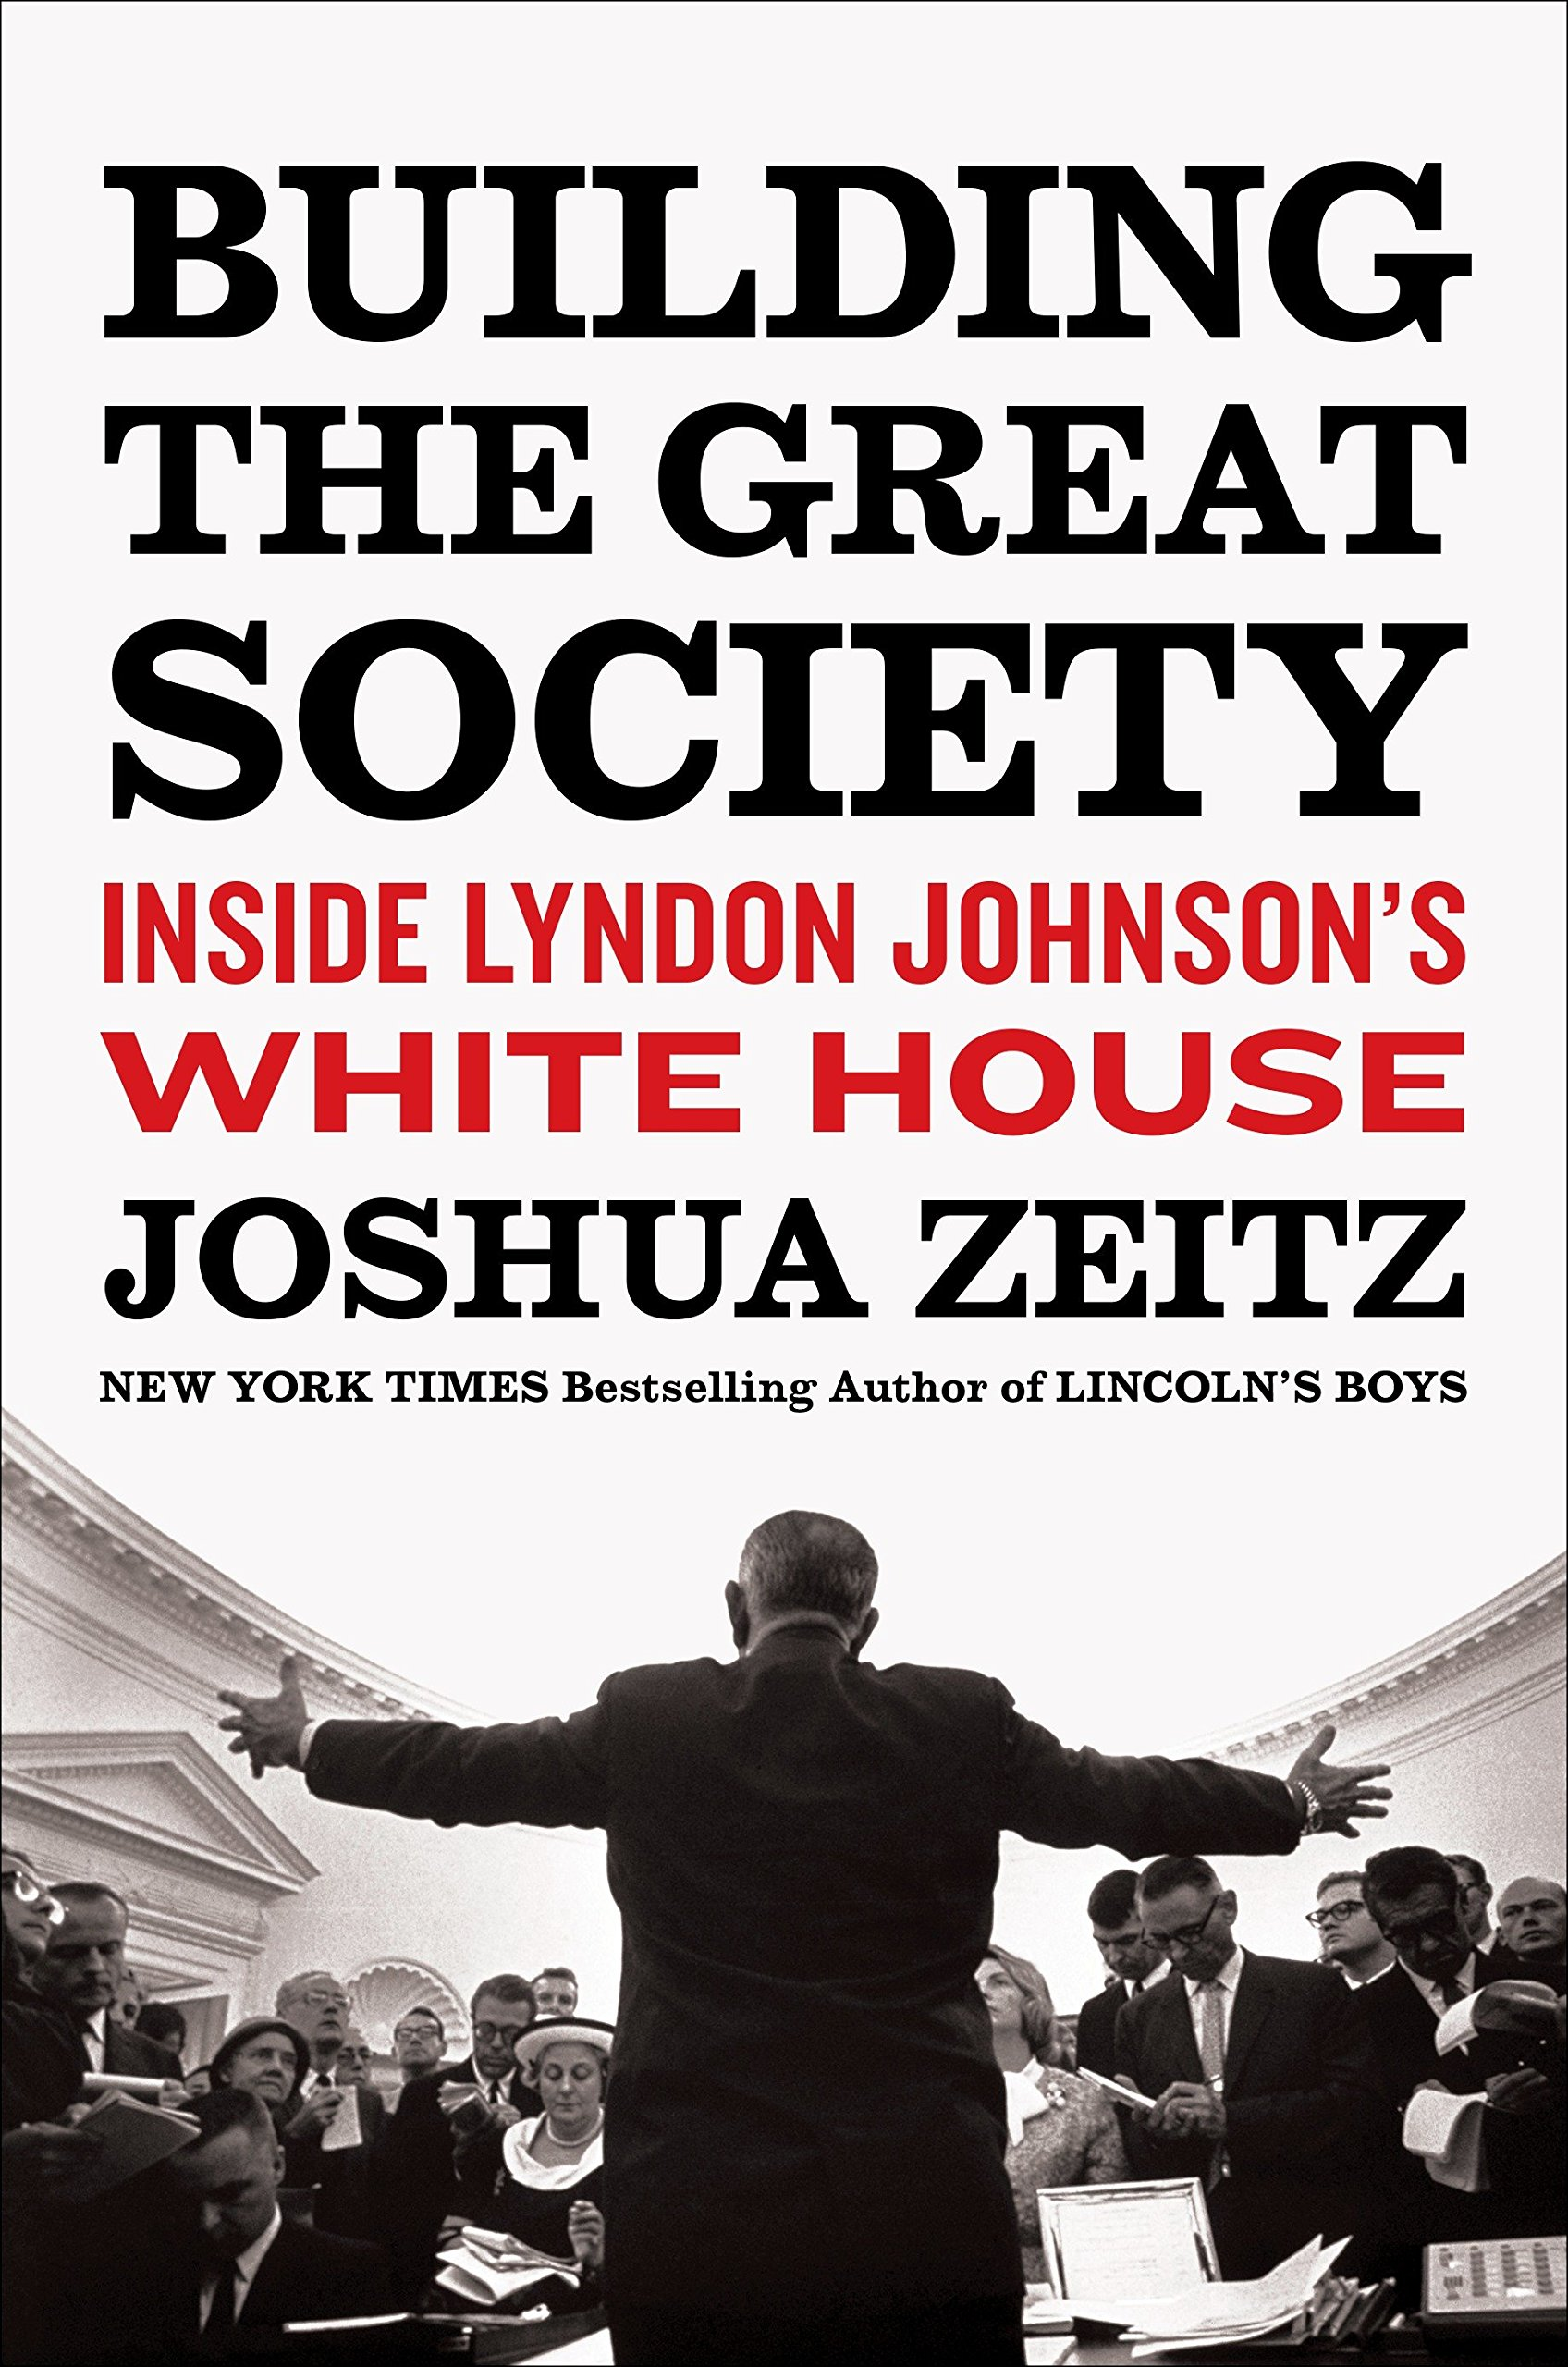 building the great society inside lyndon johnsons white house